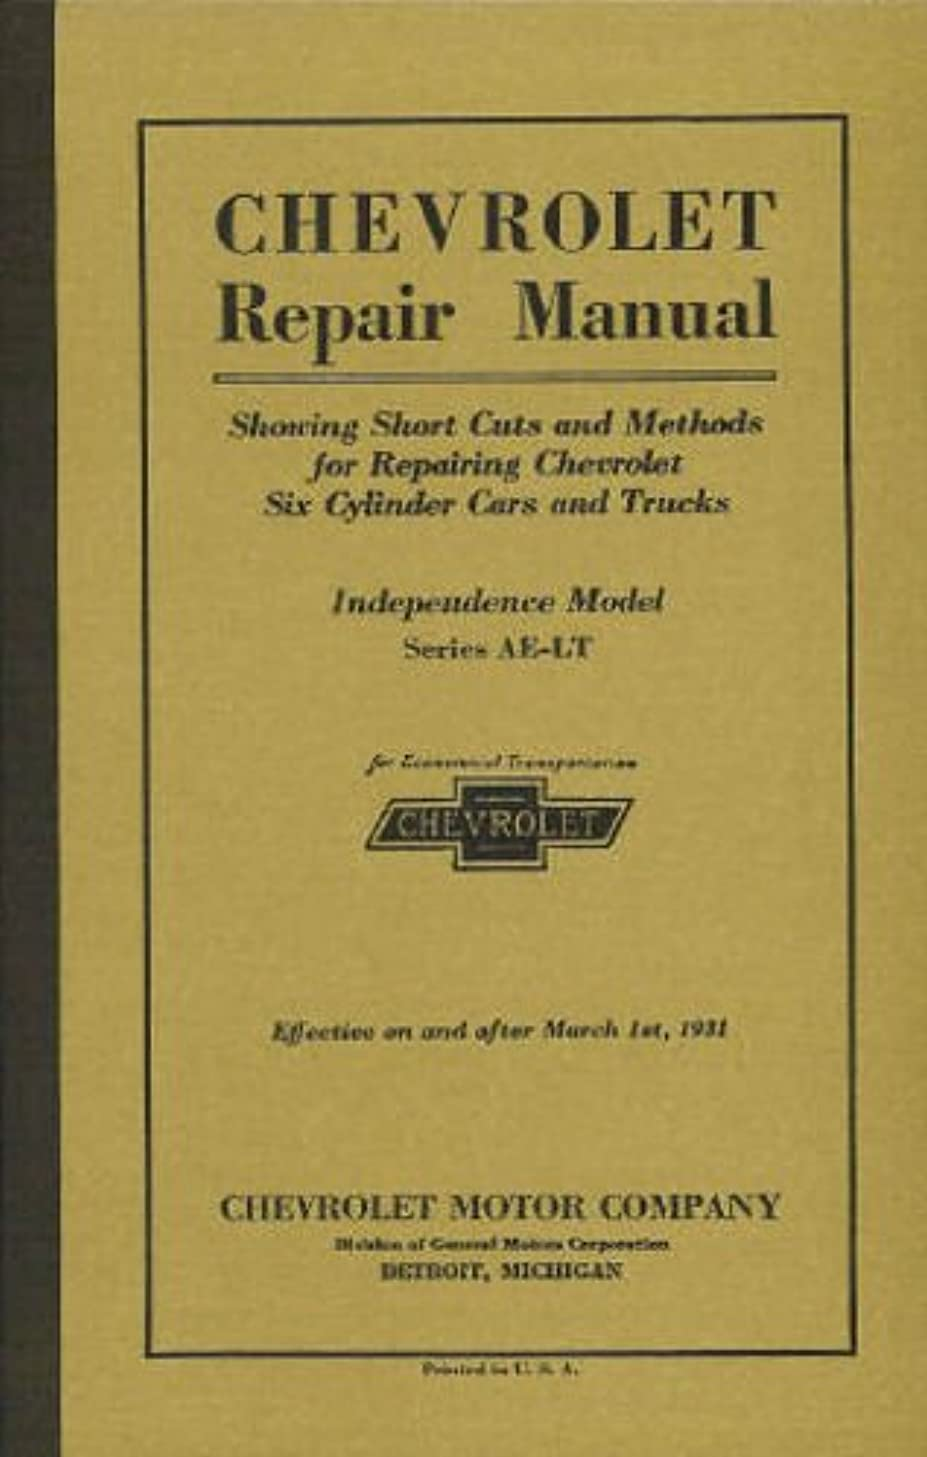 1931 CHEVROLET PASSENGER CARS, TRUCKS & PICKUP FACTORY REPAIR SHOP & SERVICE MANUAL - INCLUDES ALL MODELS - INDEPENDENCE, AE-LT 31 CHEVY